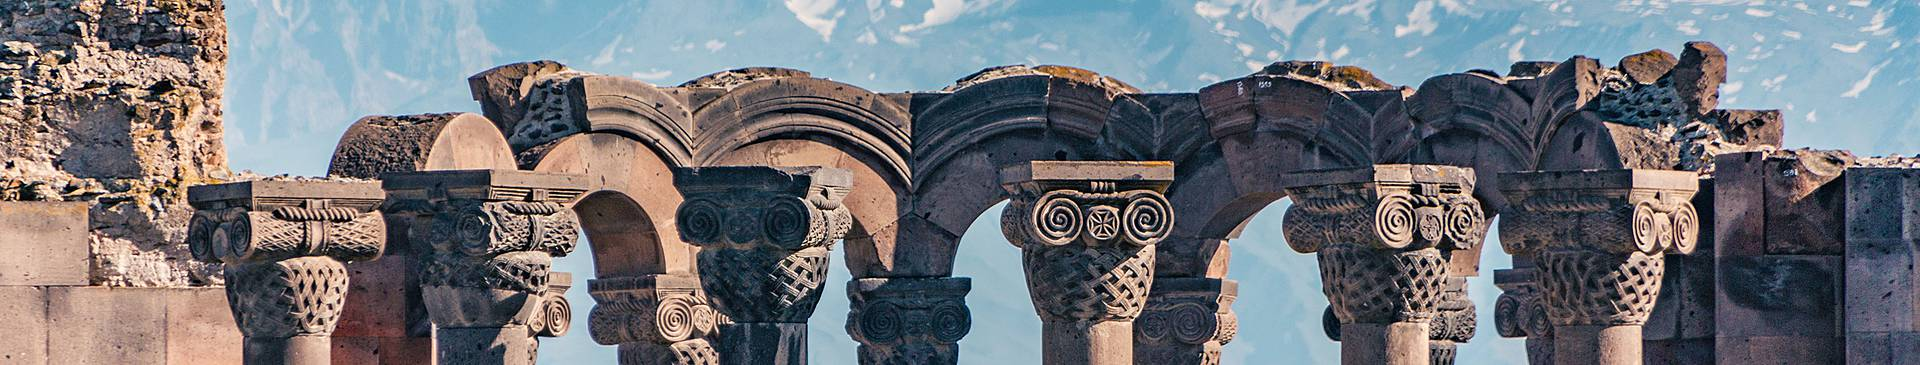 History and heritage in Armenia